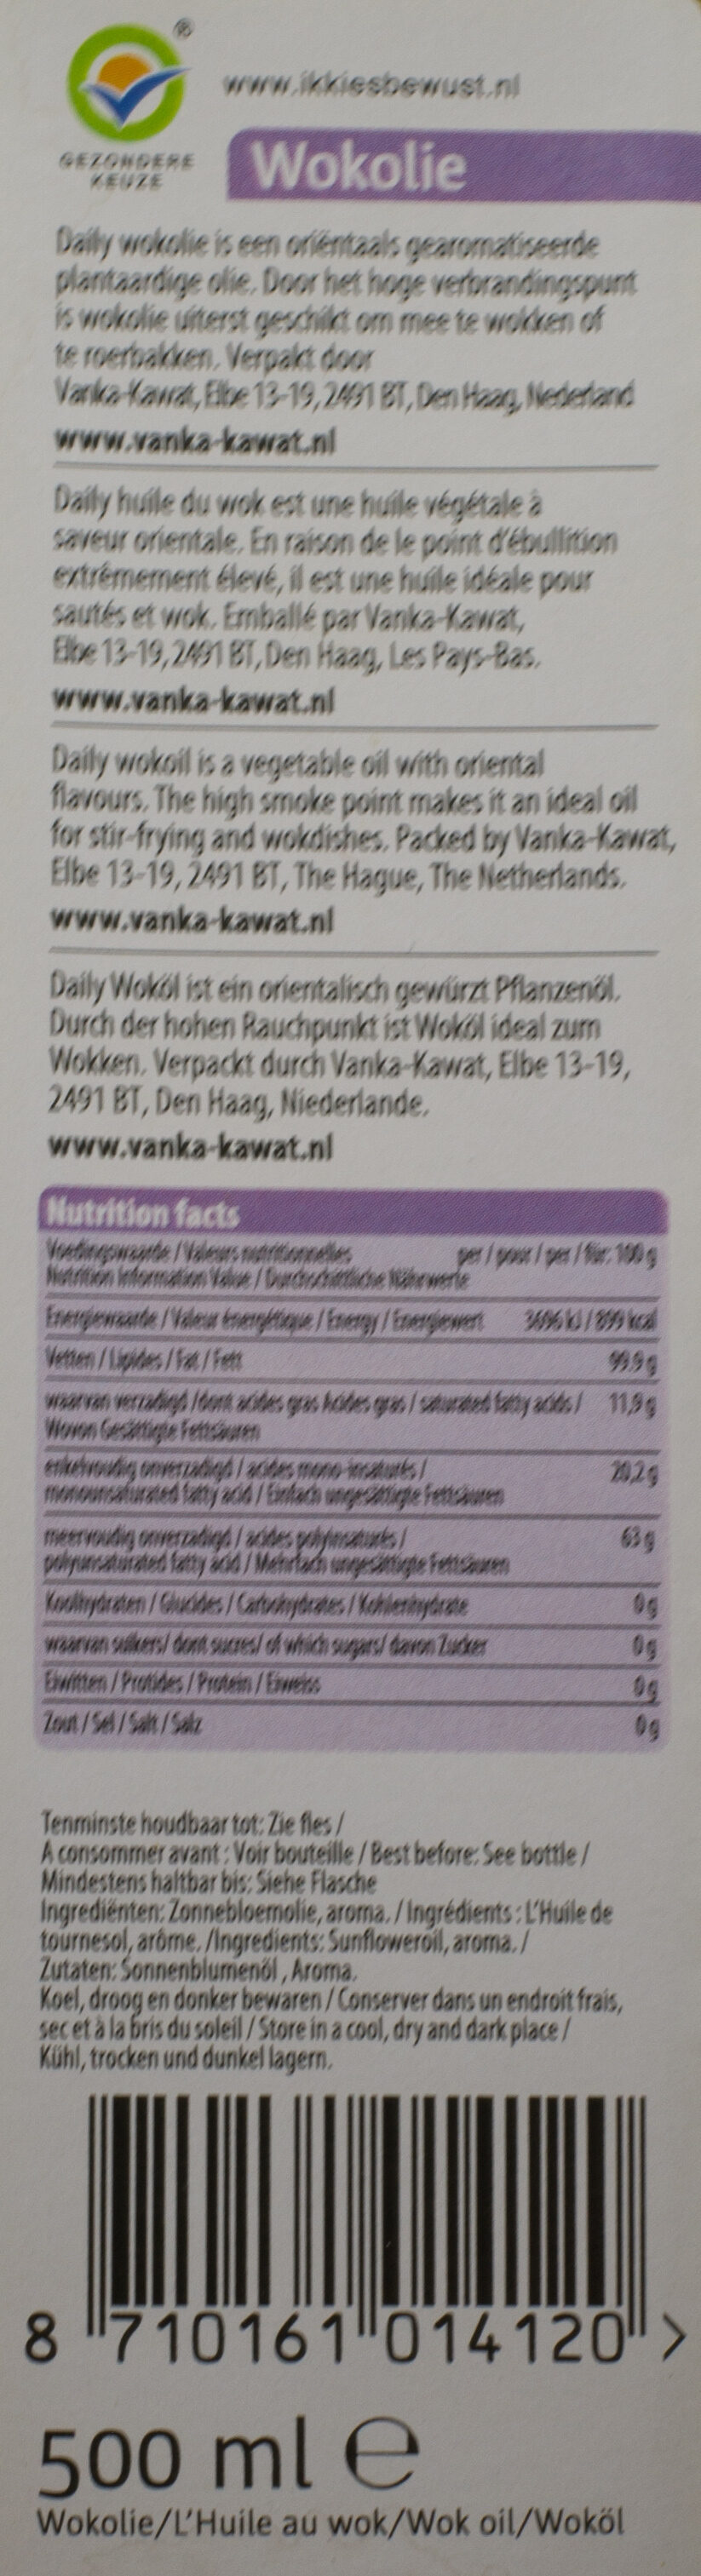 Wok Oil - Nutrition facts